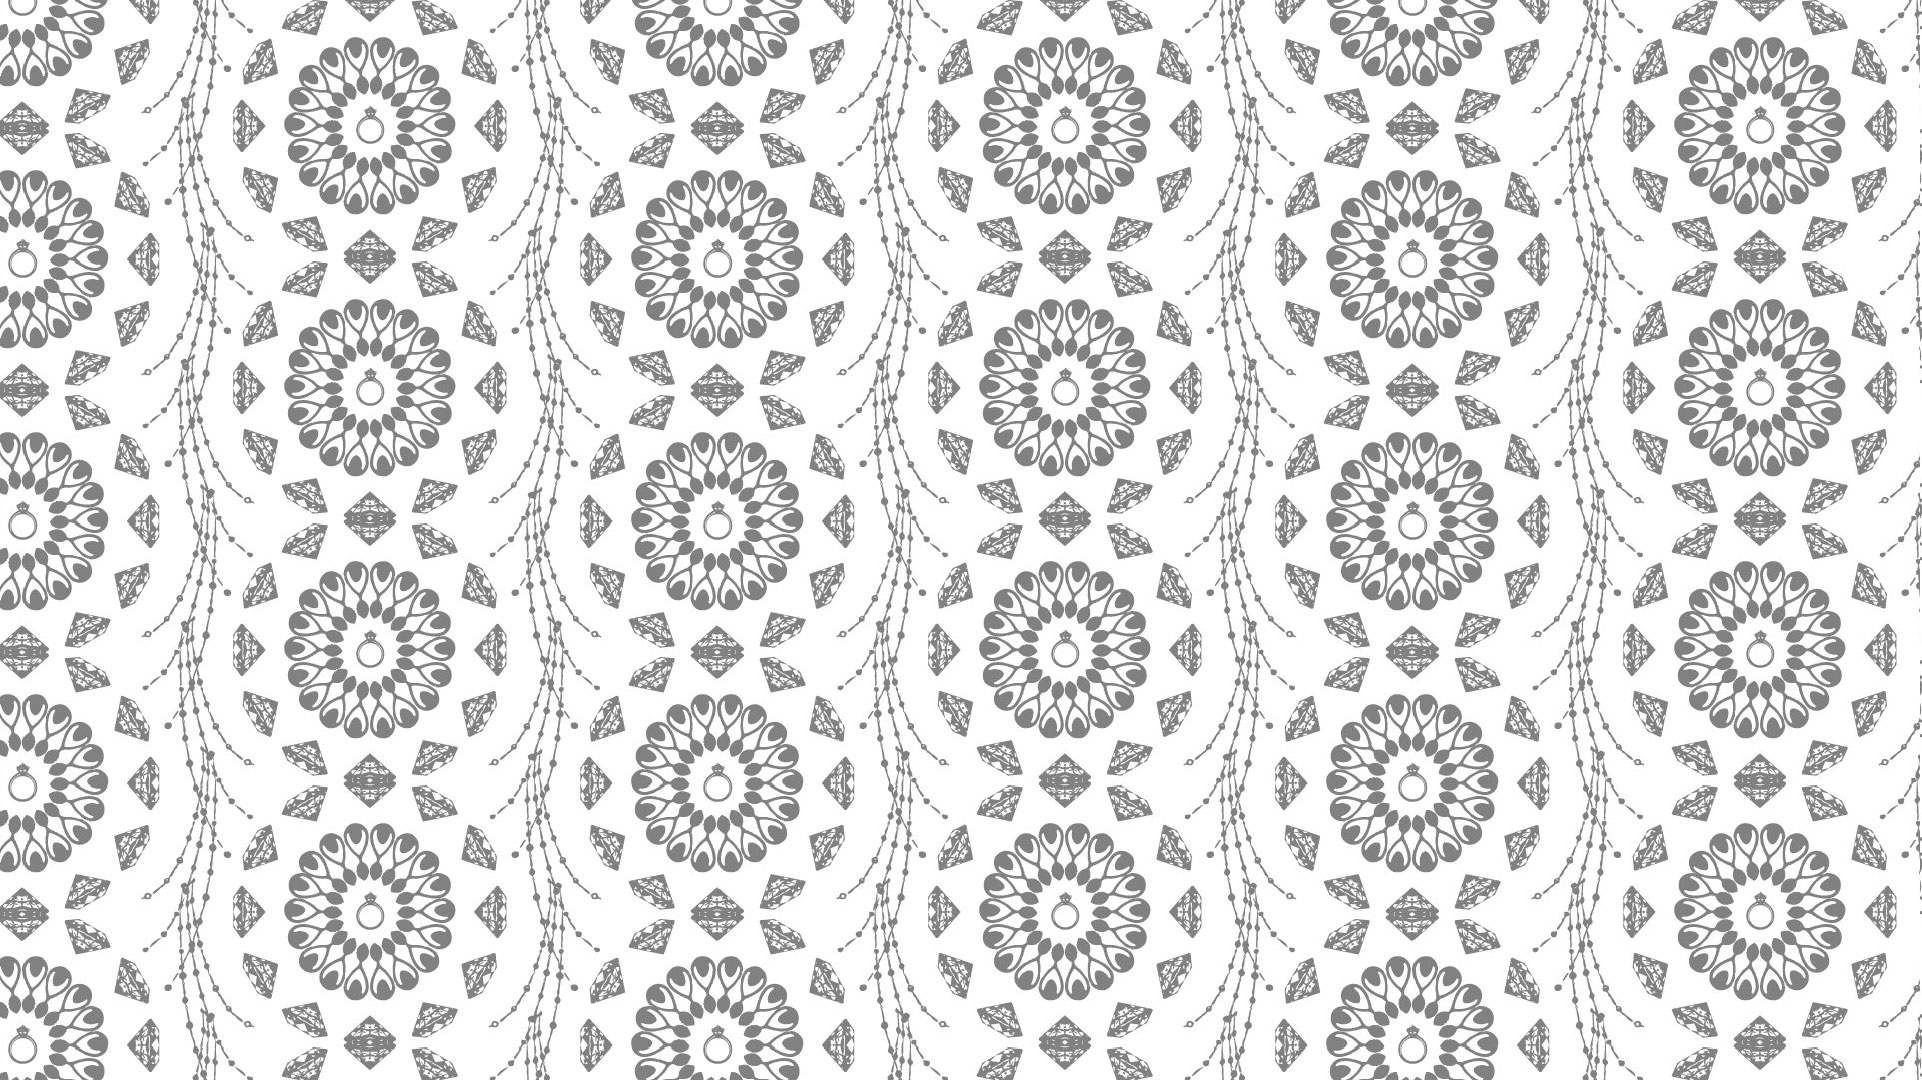 Jewels pattern